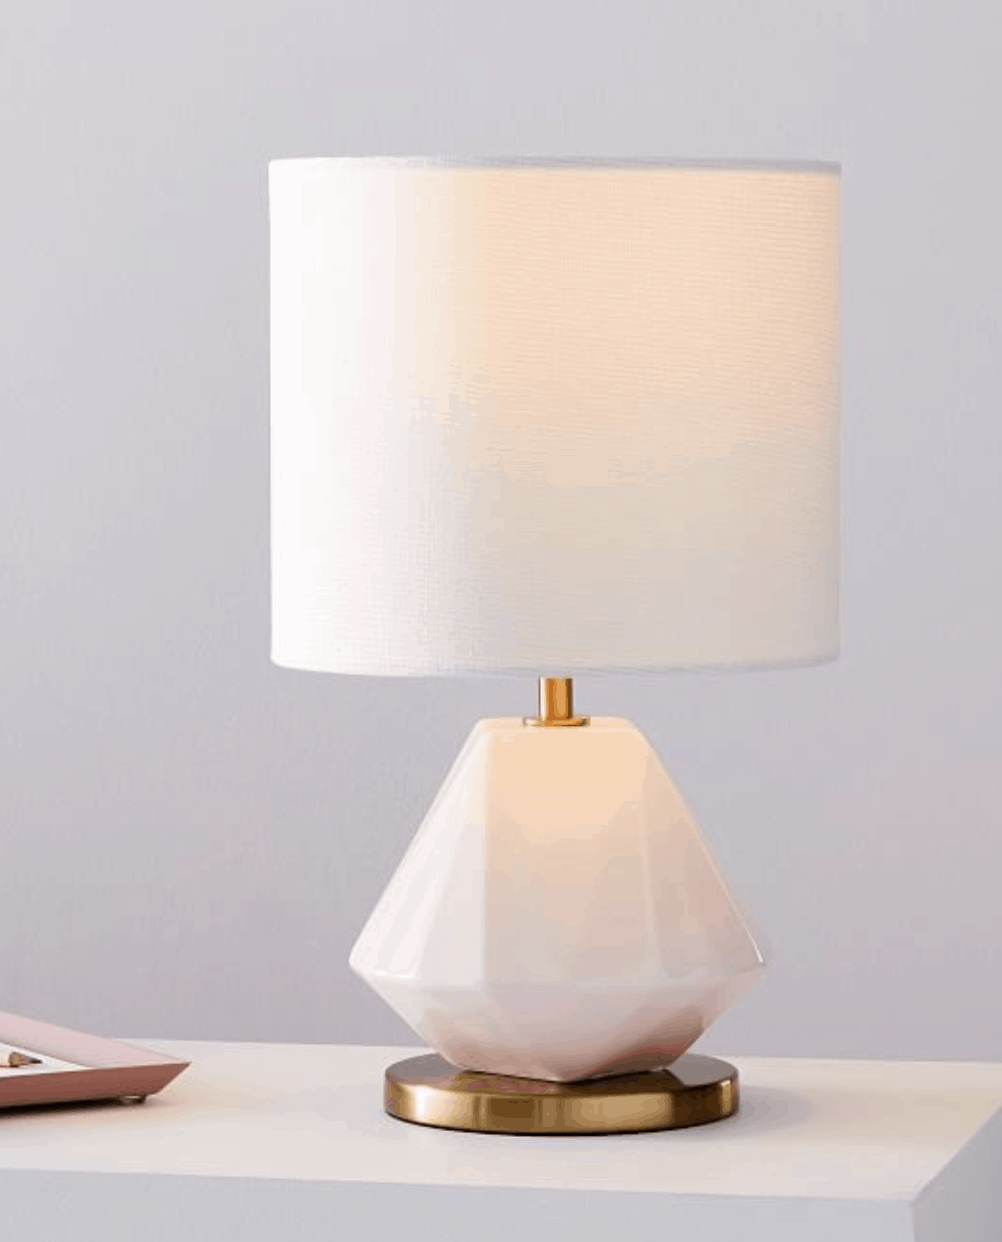 15 Gorgeous Table Lamps Under 100 Table Lamp Home Decor